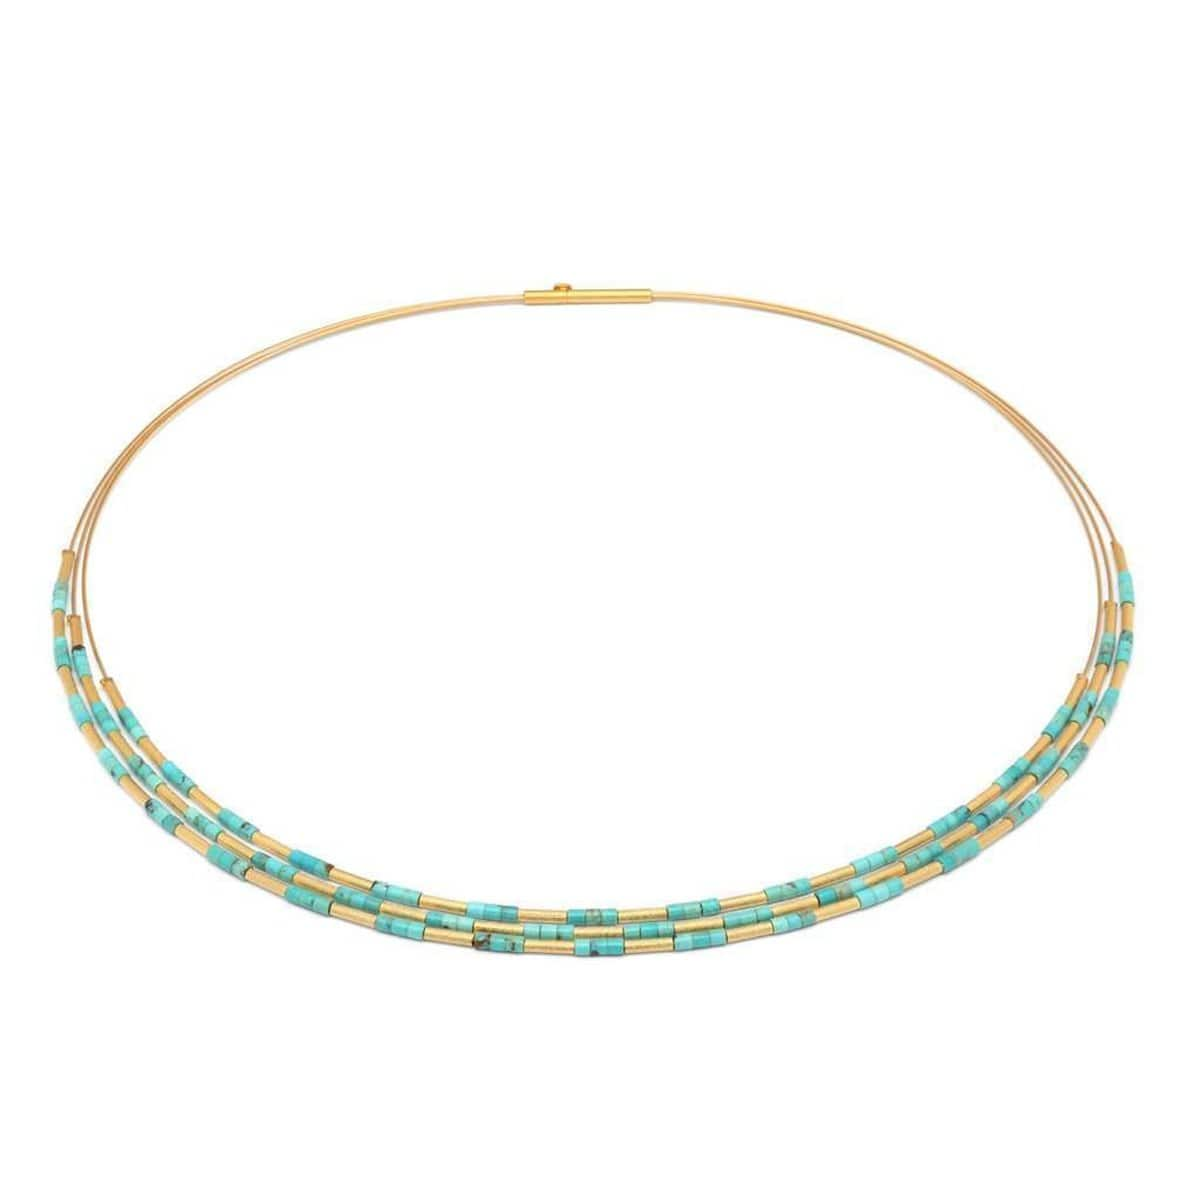 Clia Turquoise Necklace - 85223256-Bernd Wolf-Renee Taylor Gallery